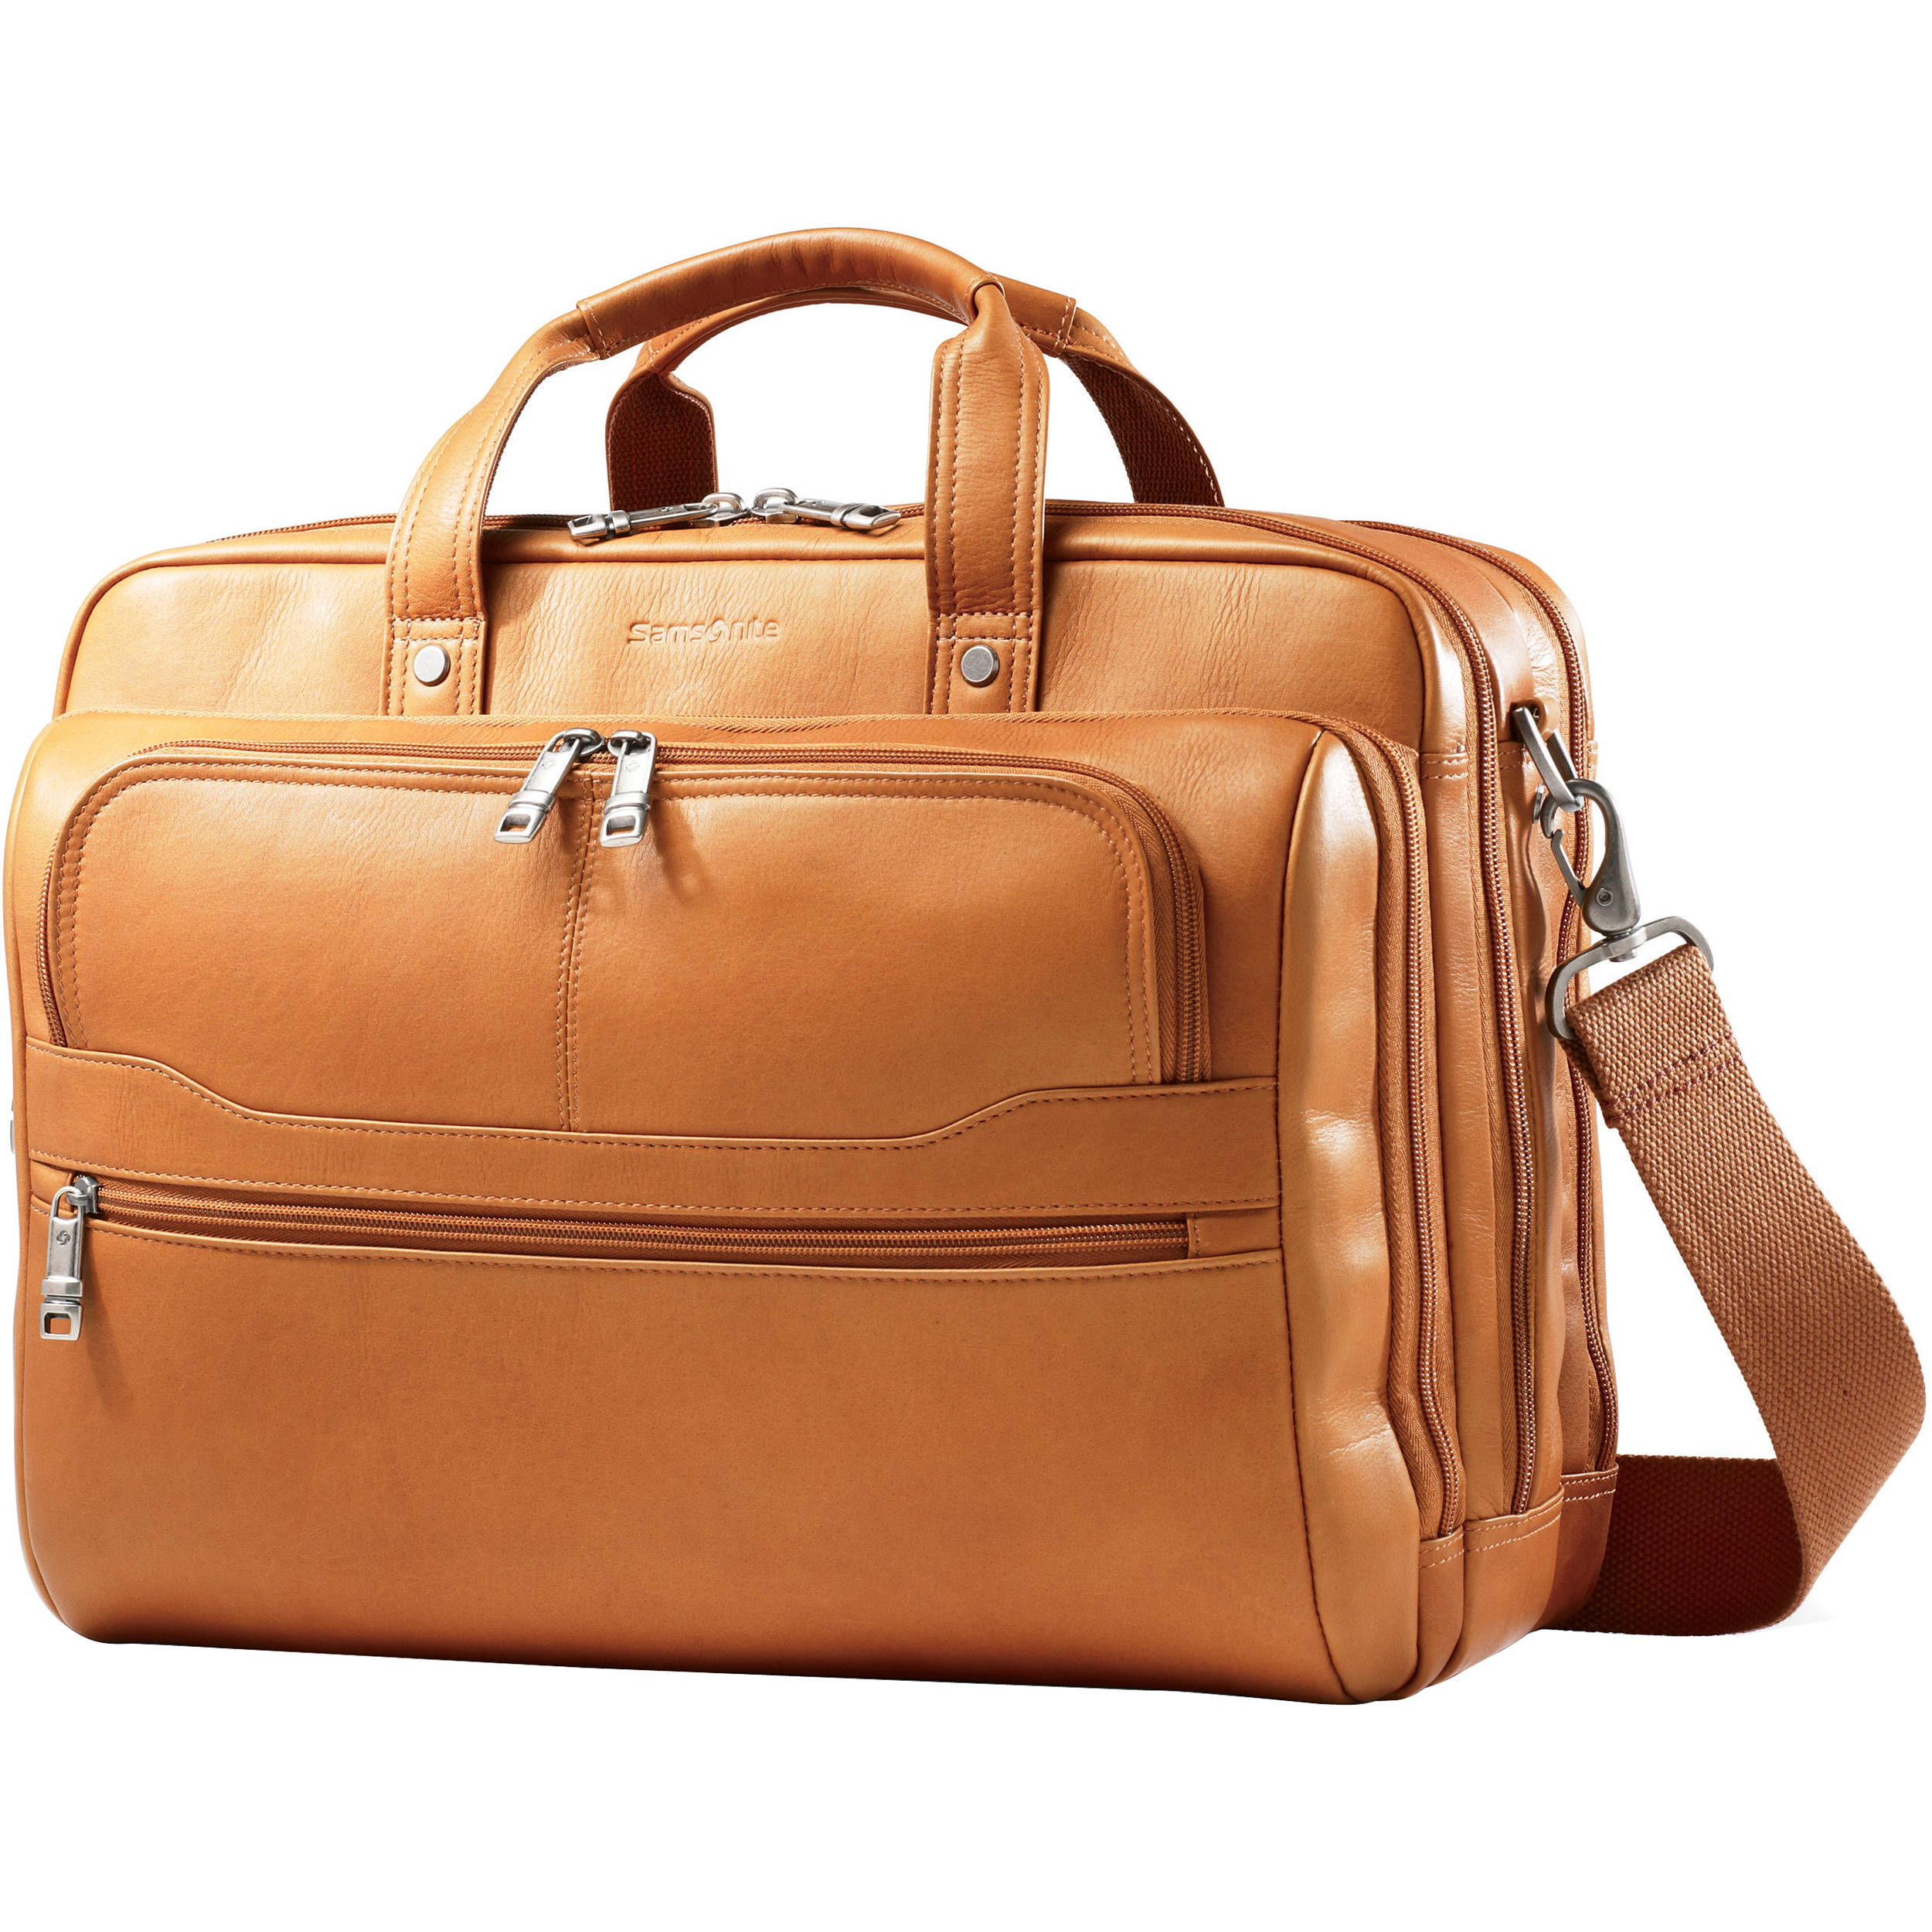 Samsonite Colombian Leather 2 Pocket Business Case 50791 1847